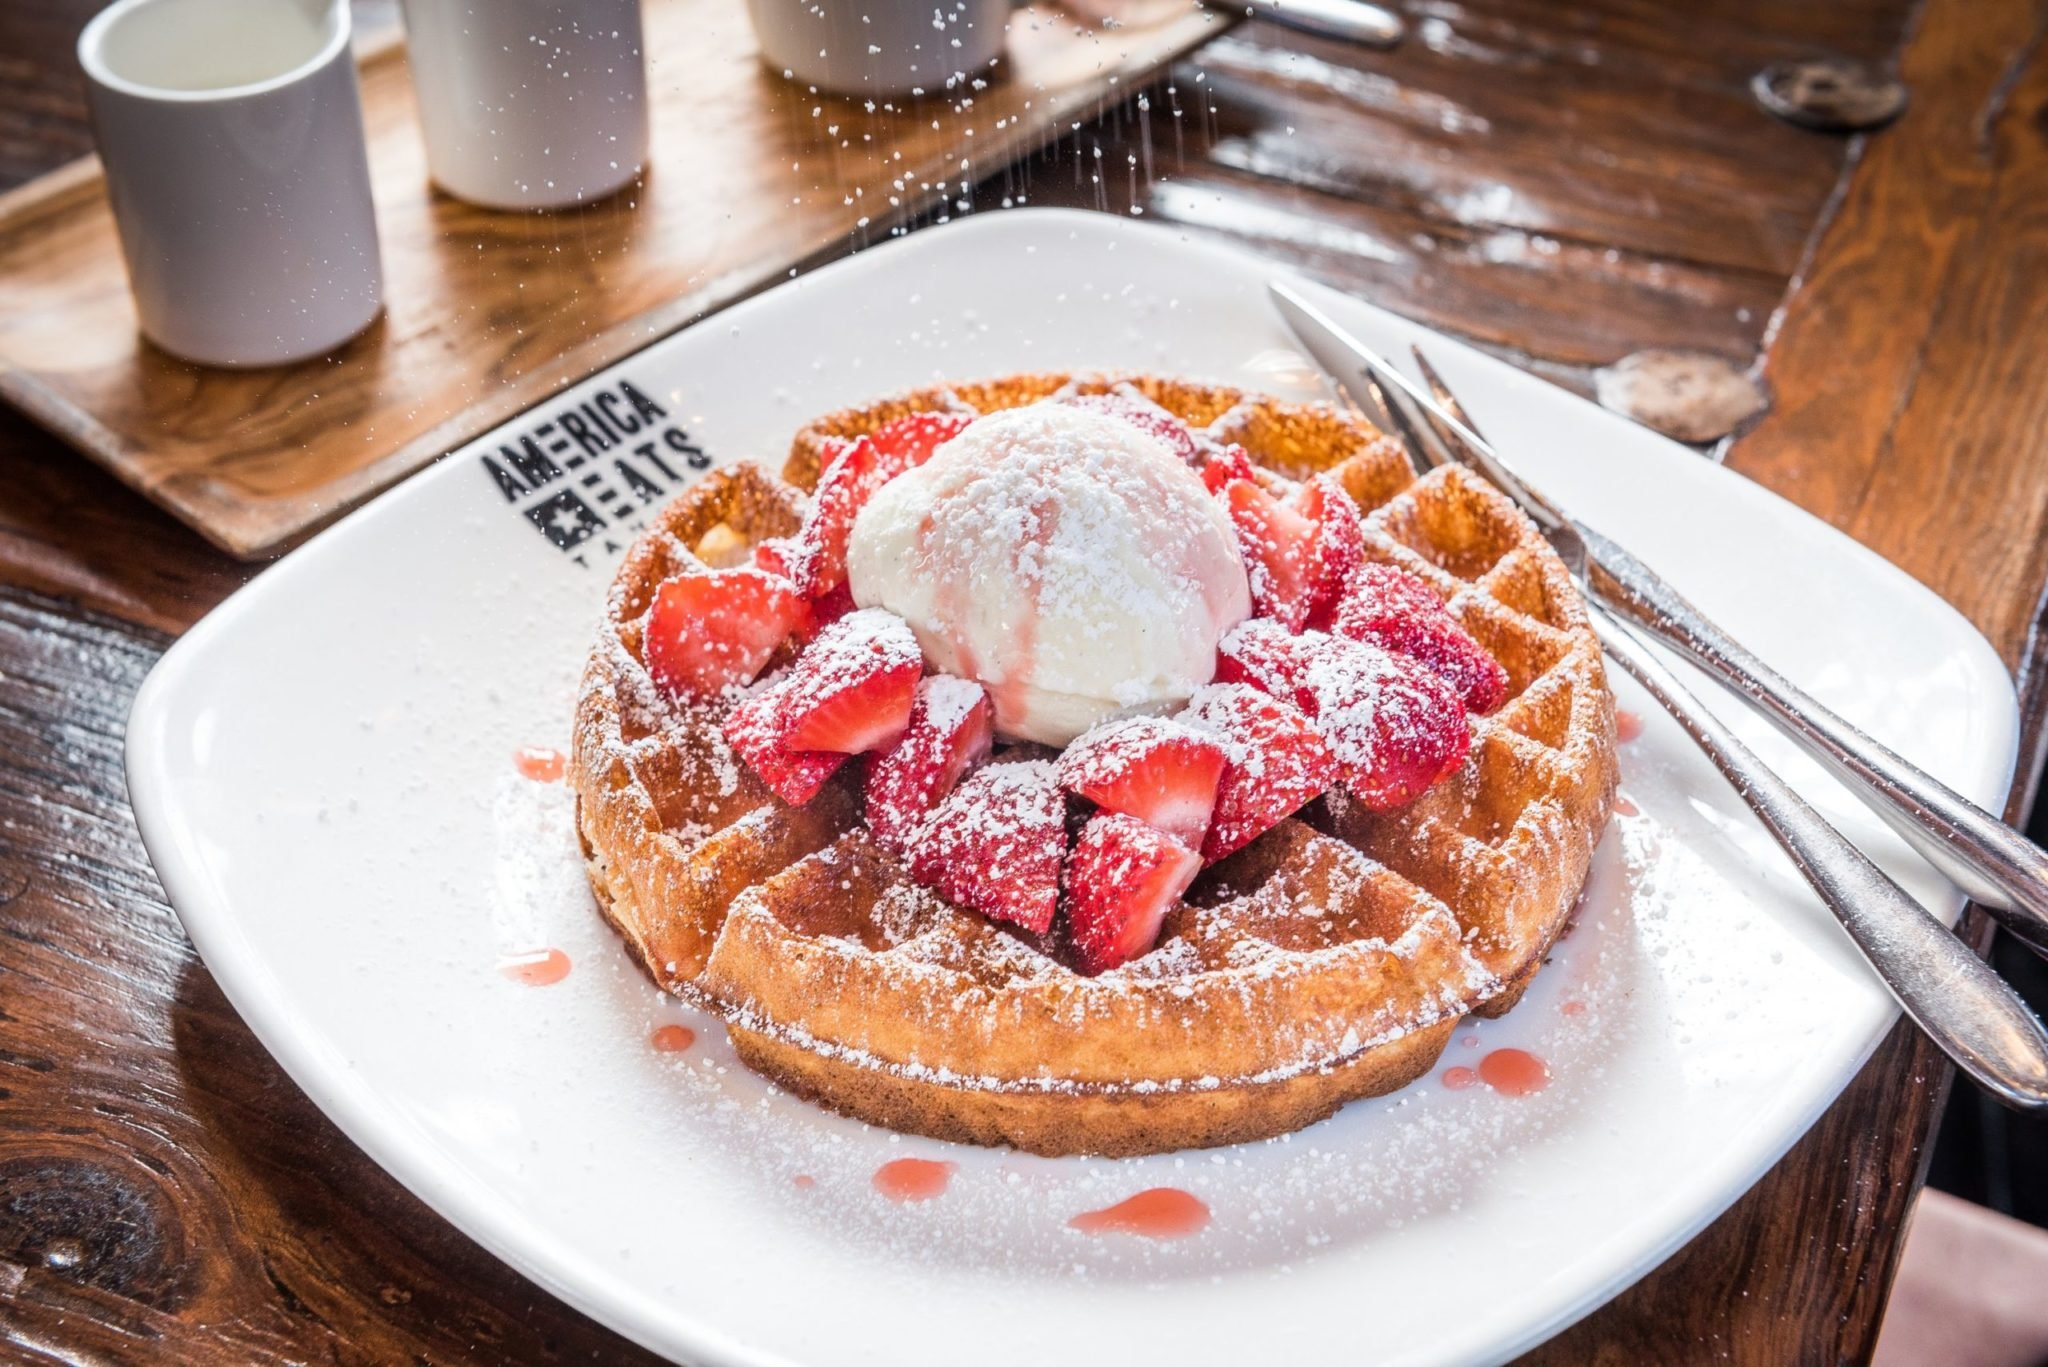 House-made waffles at America Eats Tavern in Georgetown. Photograph by Rey Lopez.